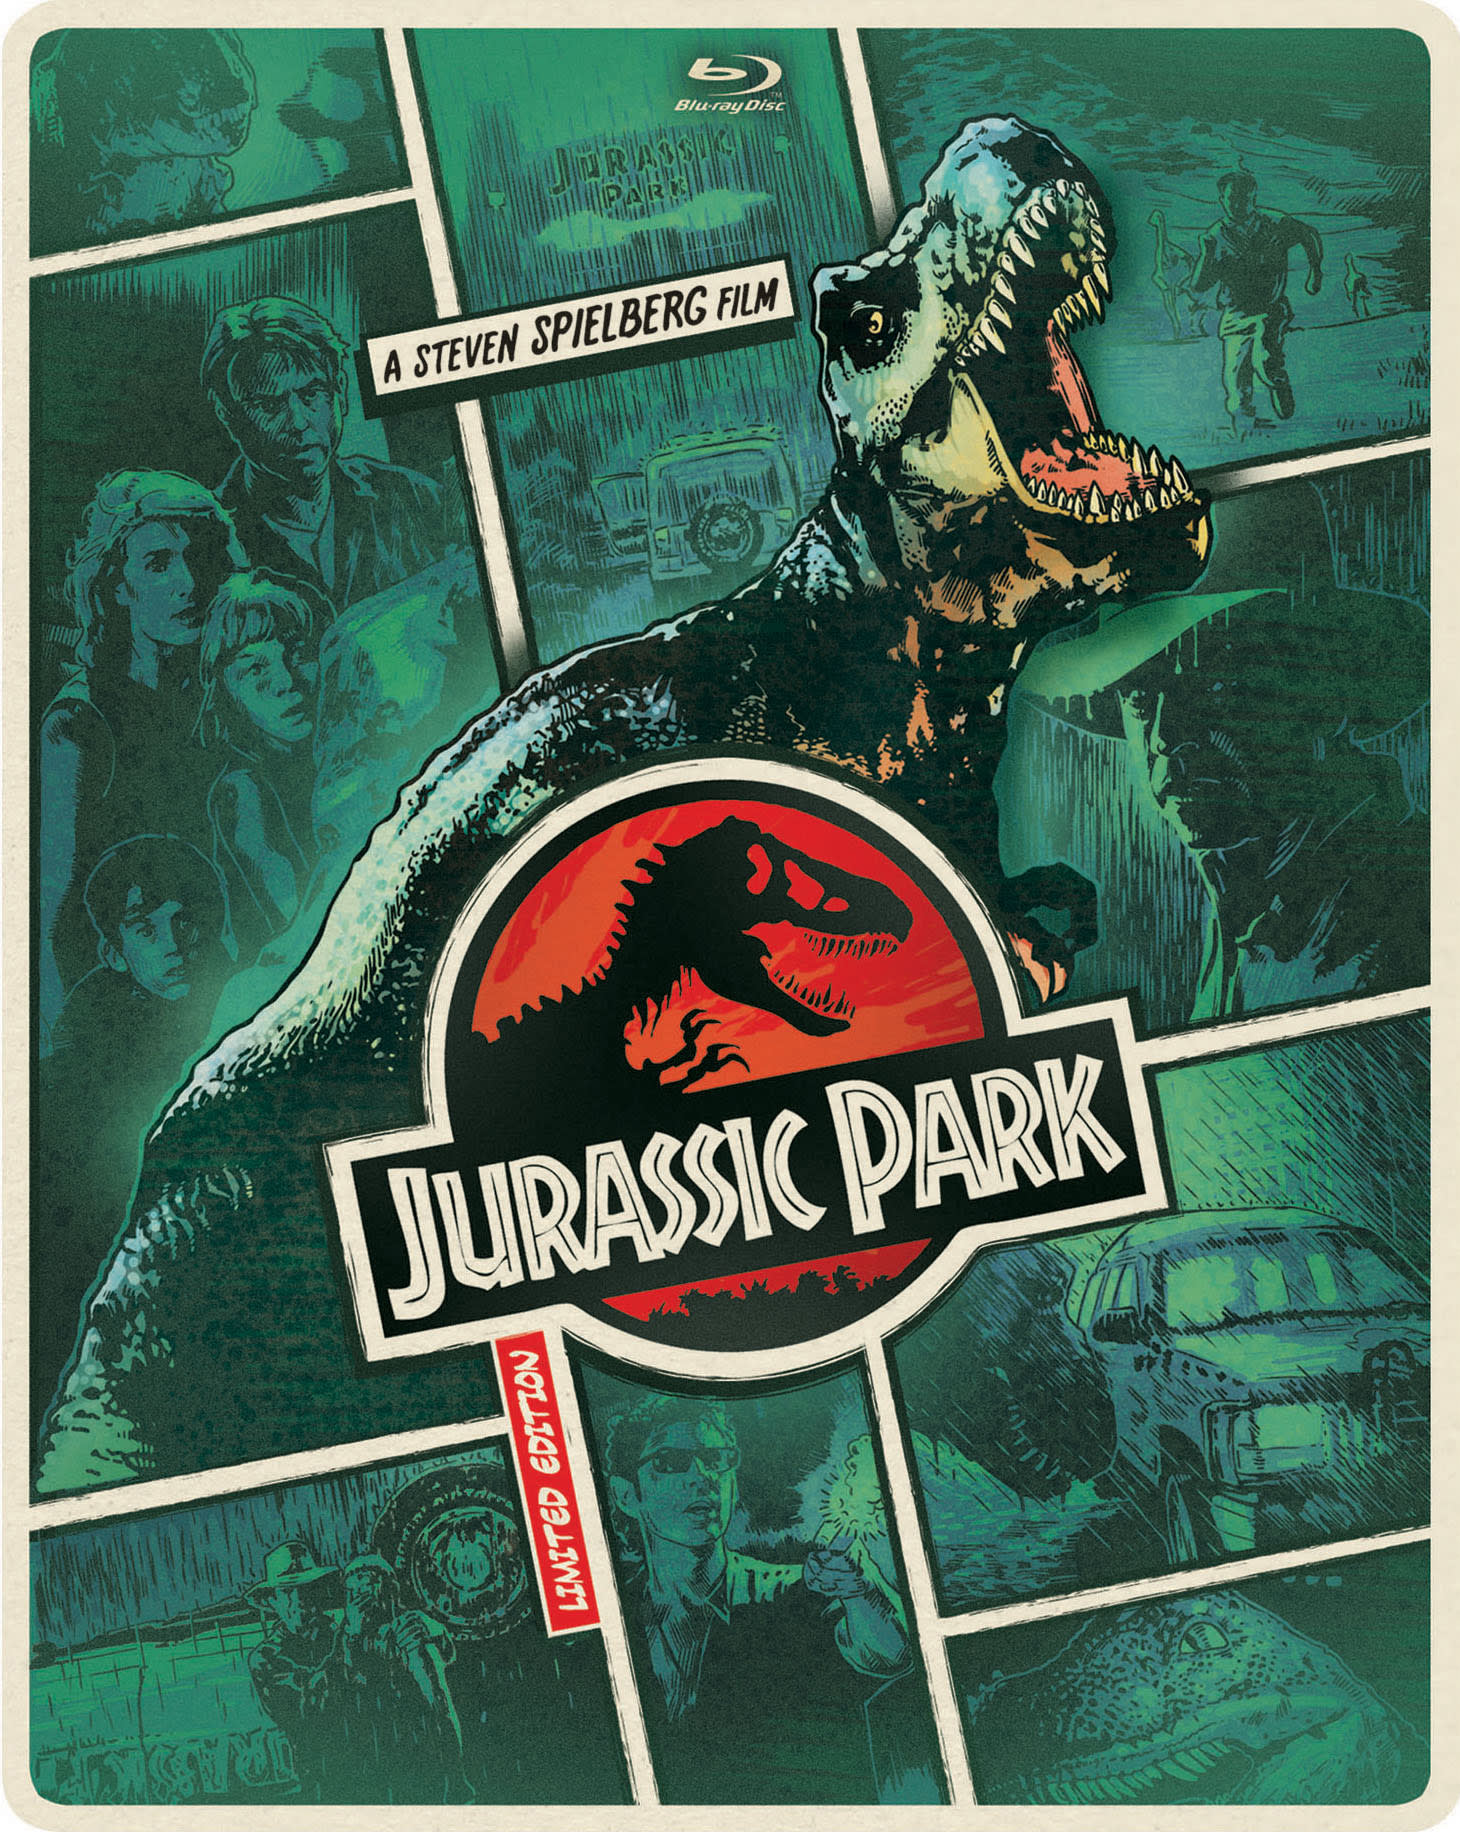 Jurassic Park (Limited Edition Steelbook DVD + Digital + Ultraviolet) [Blu-ray]